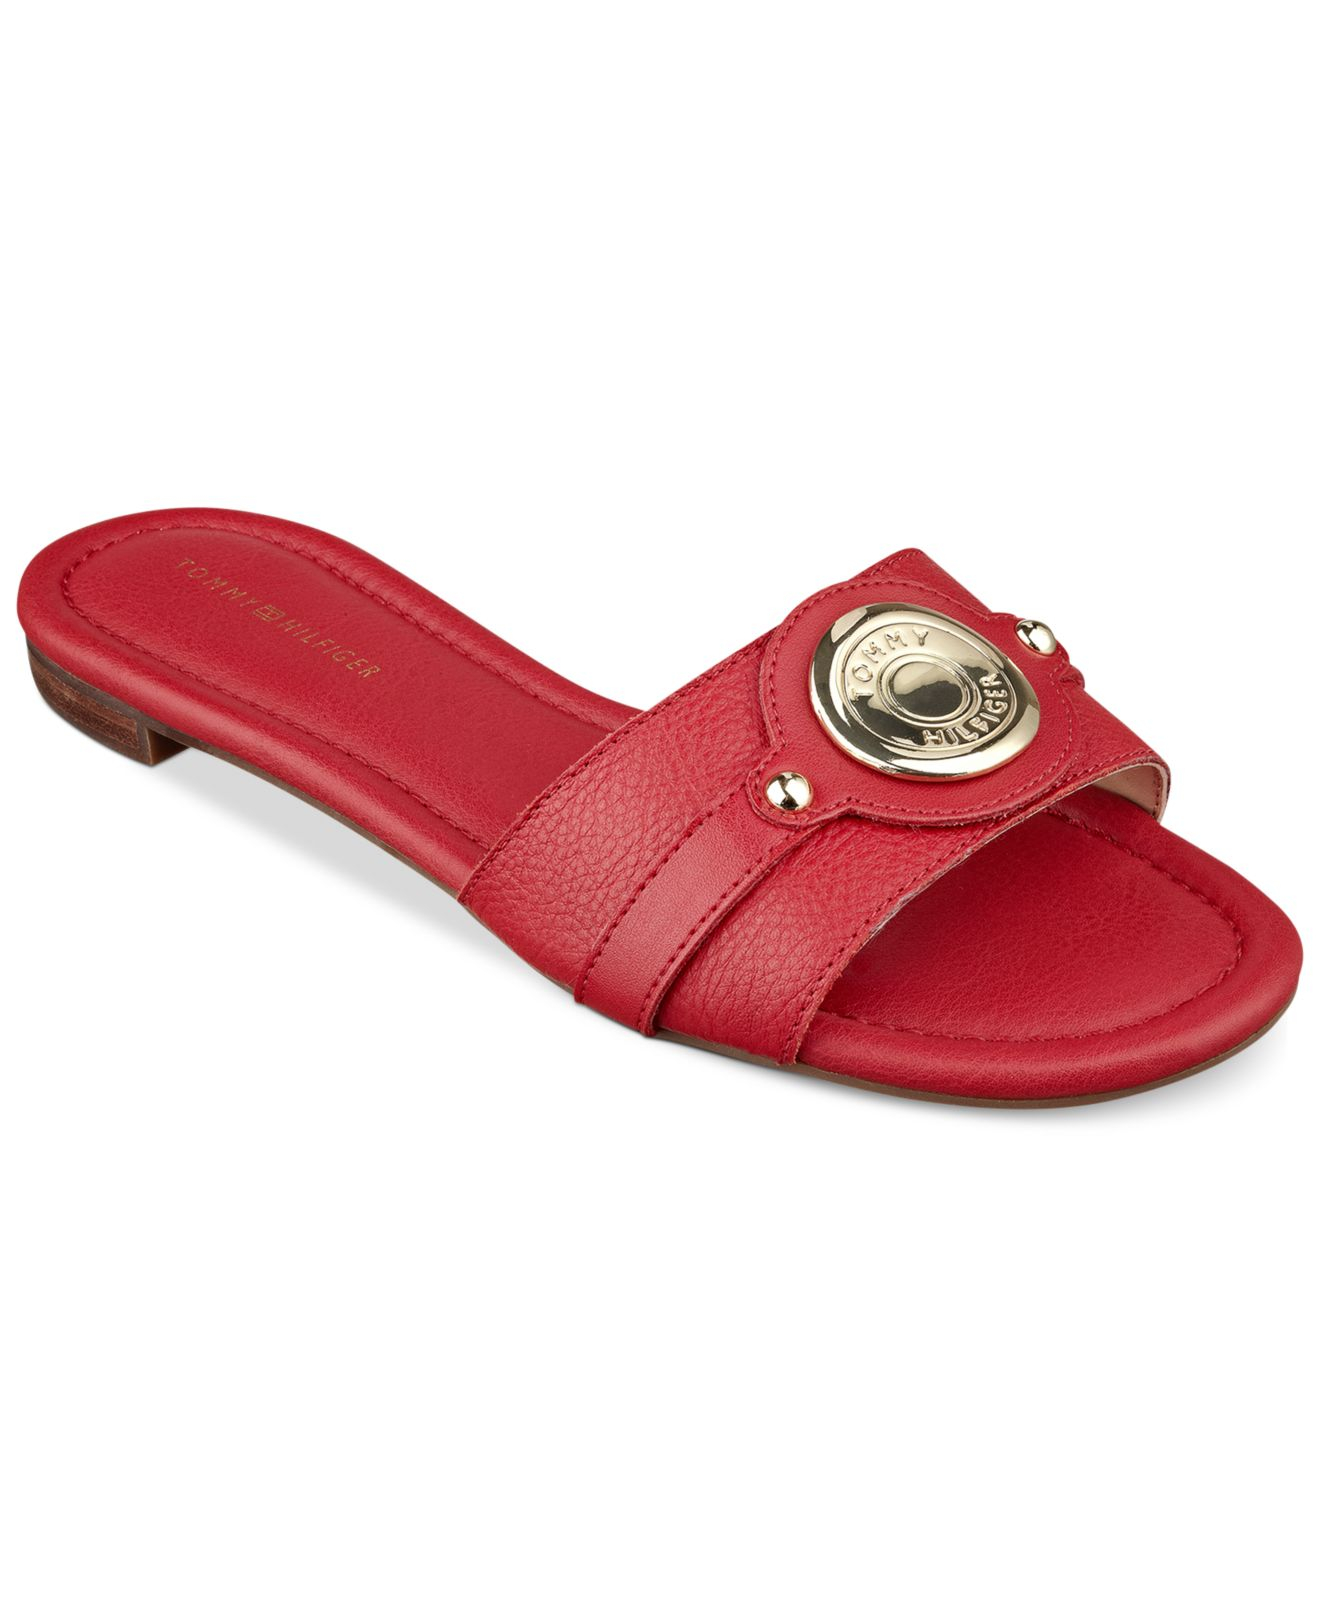 3be2135bdfc Lyst - Tommy Hilfiger Women S Icela Slide Sandals in Red